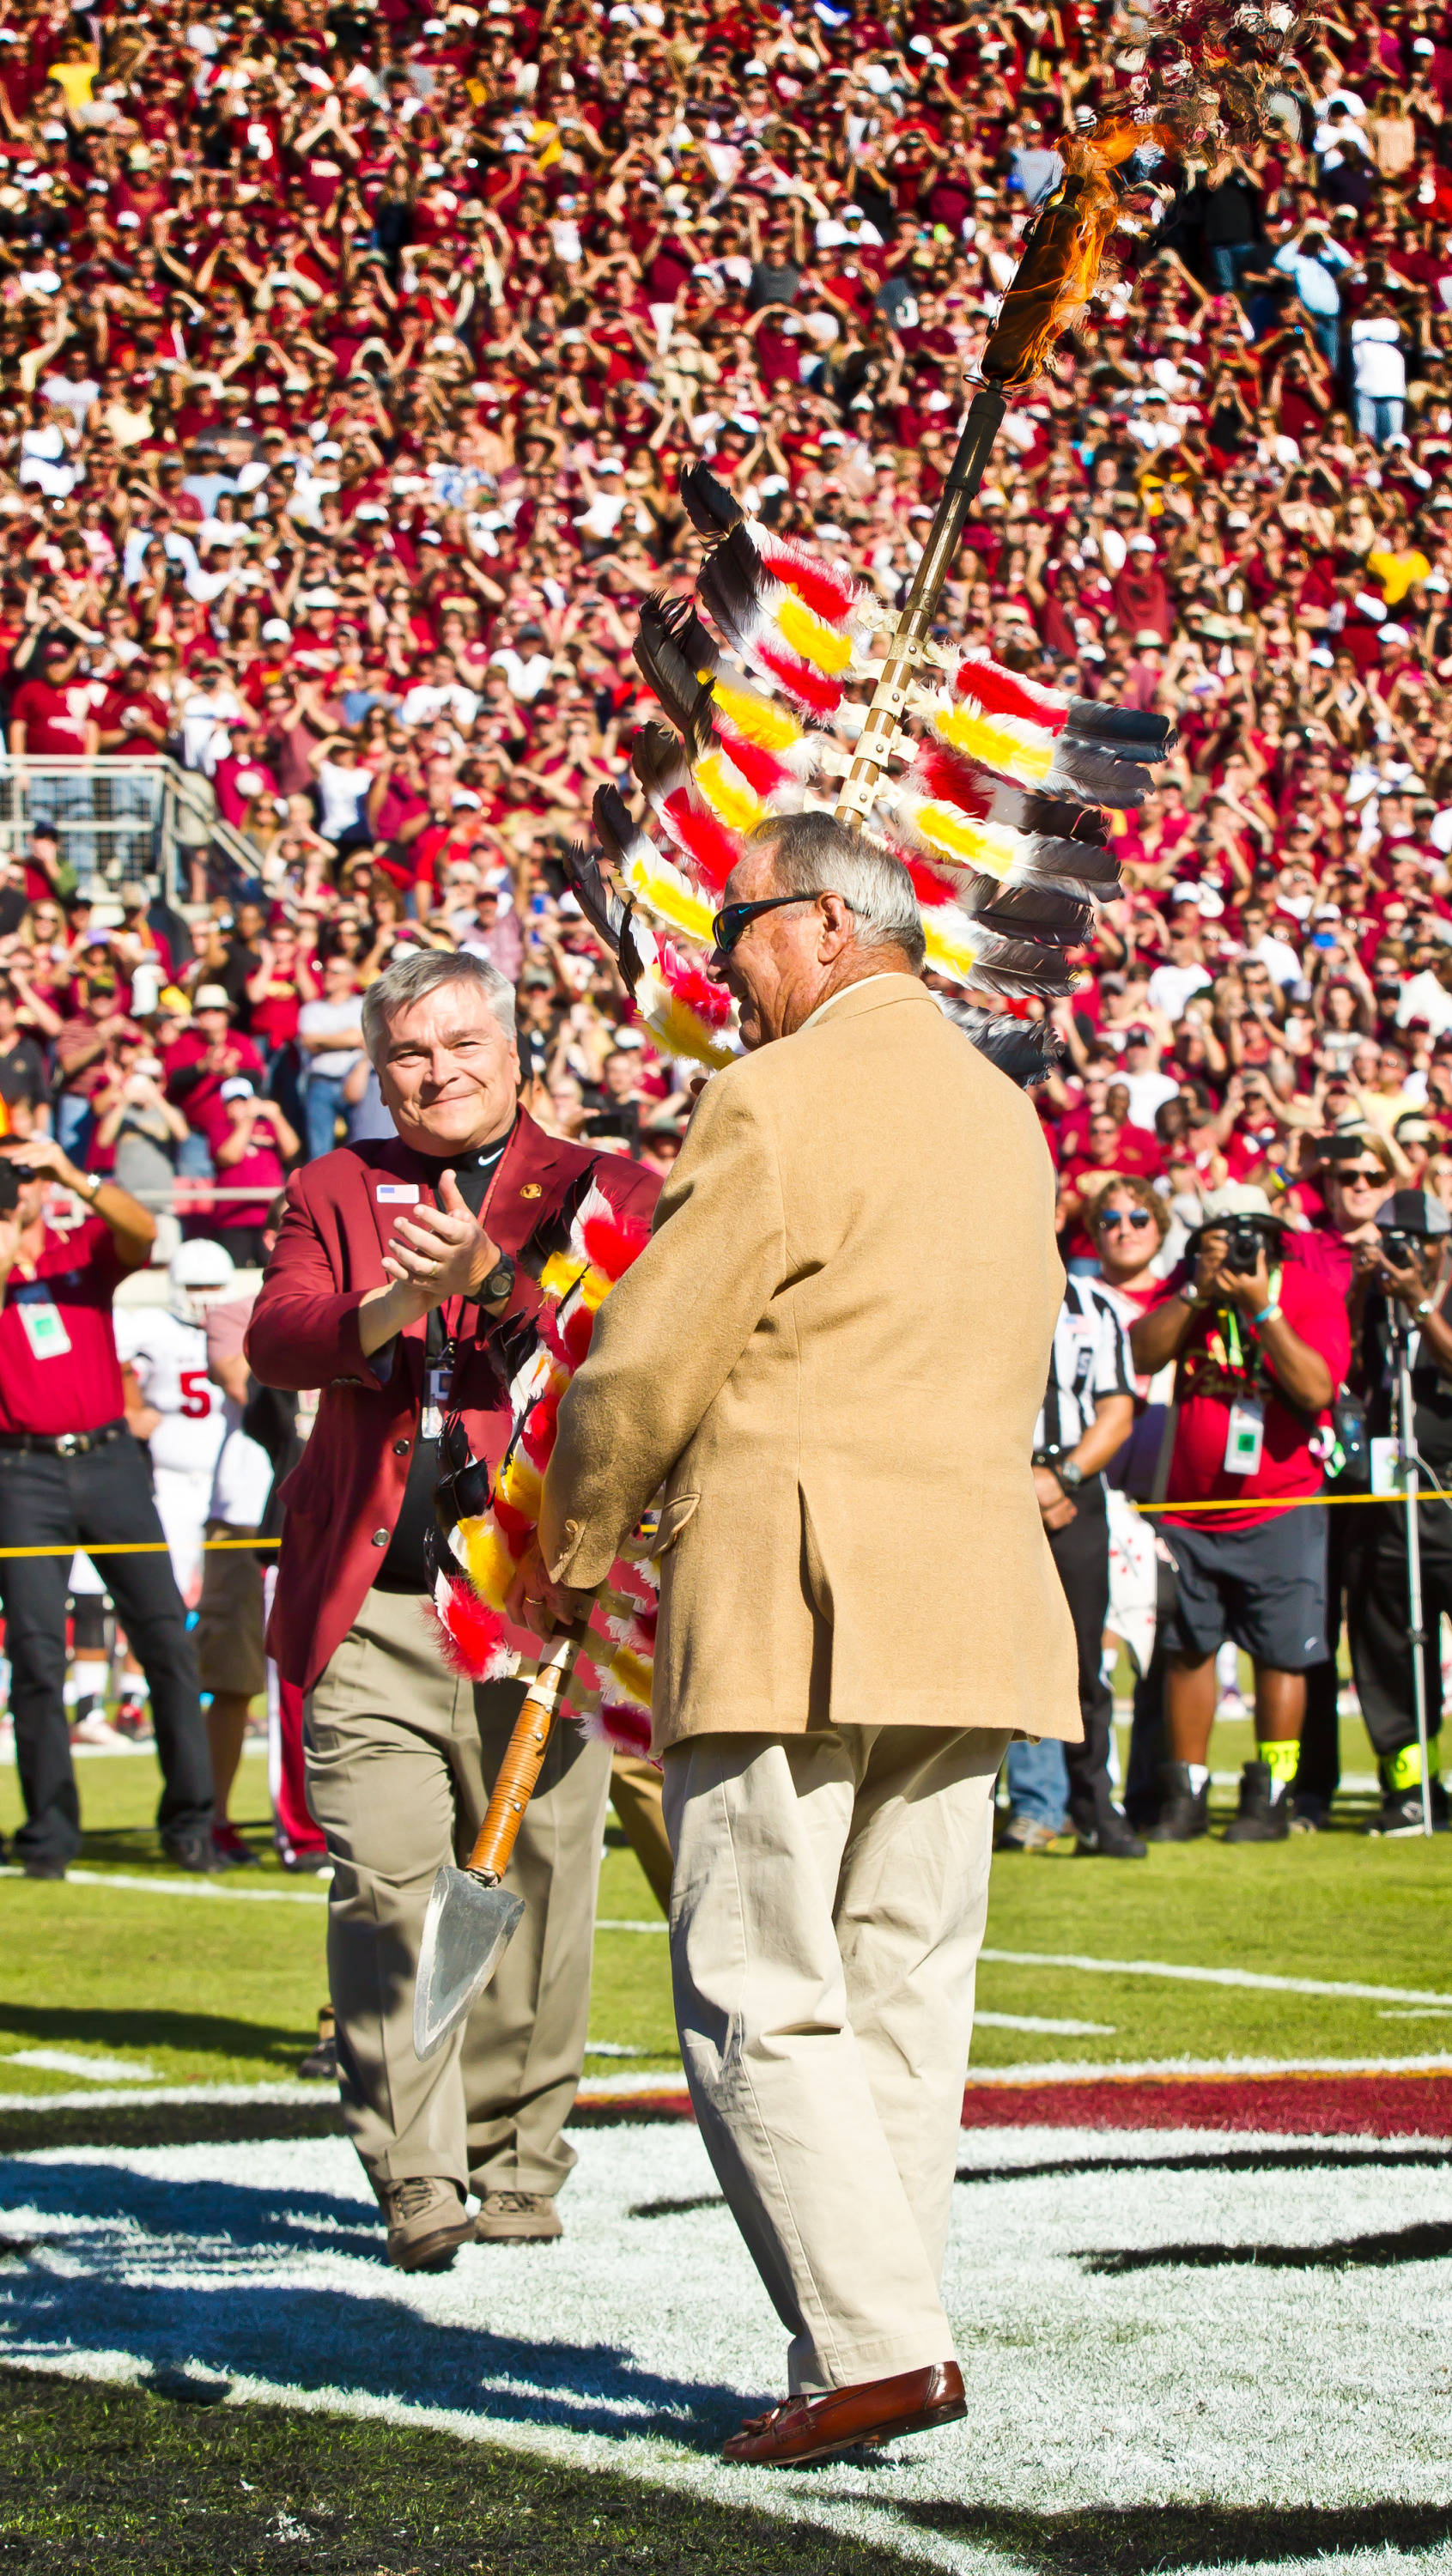 President Eric Barron hands off Osceola's spear to Coach Bowden.